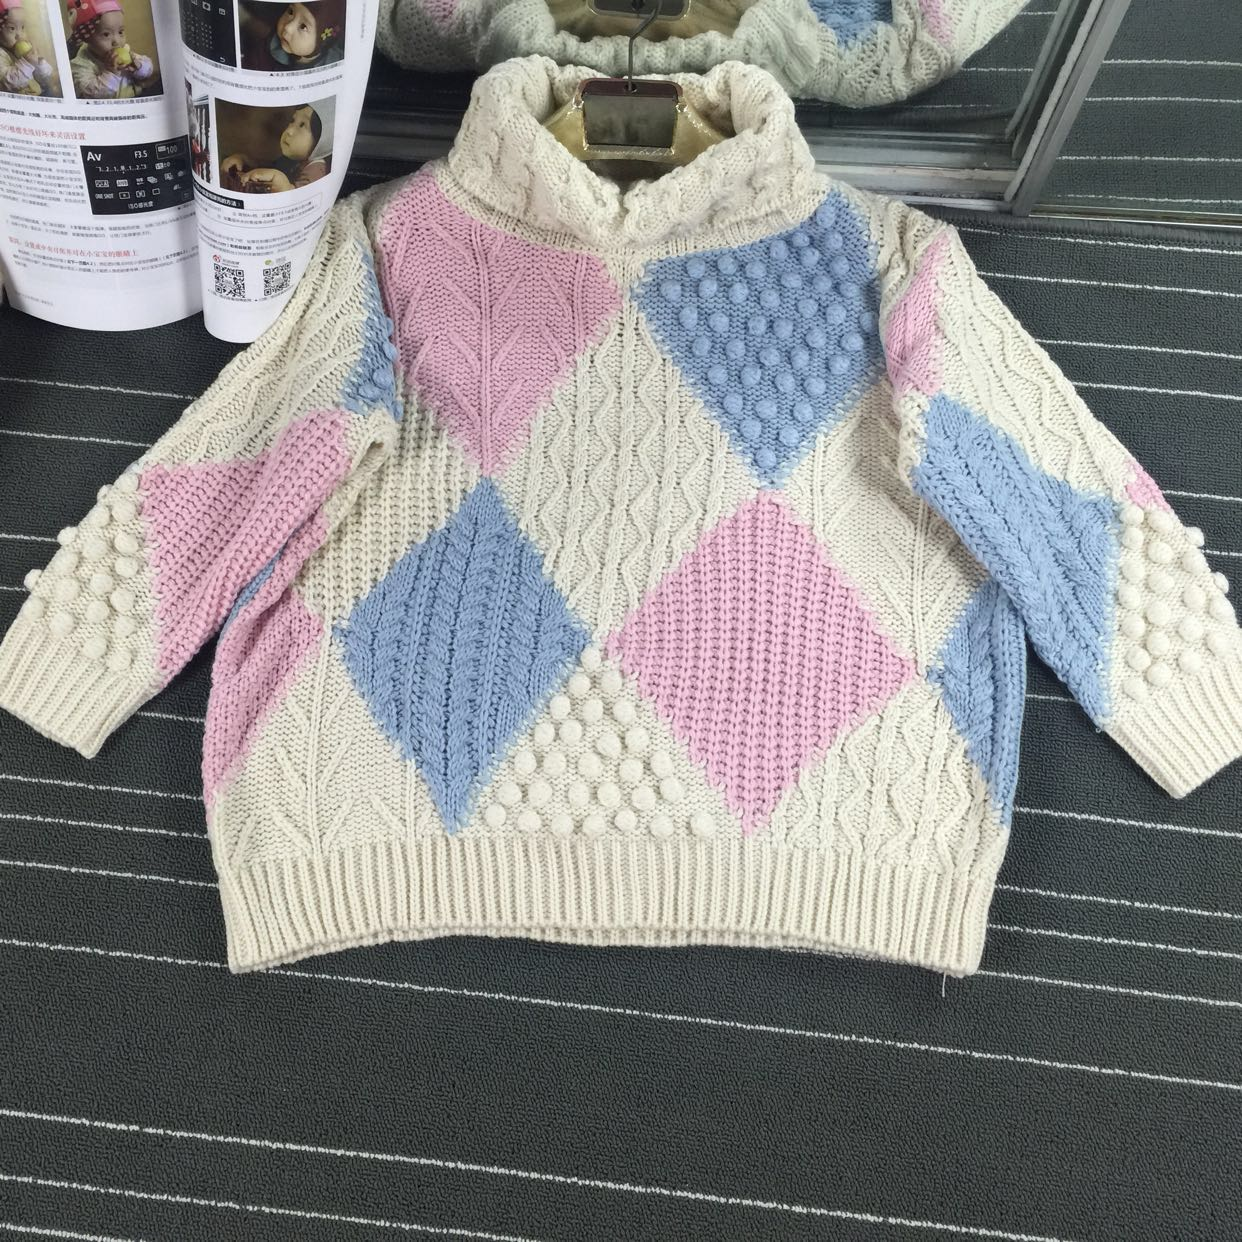 Poncho Pullover Sale Cotton Women Sweater 2017 Spring New 's Hit Color  Heavy Industry Diamond Shaped Ball Knit Turtleneck -in Pullovers from  Women's